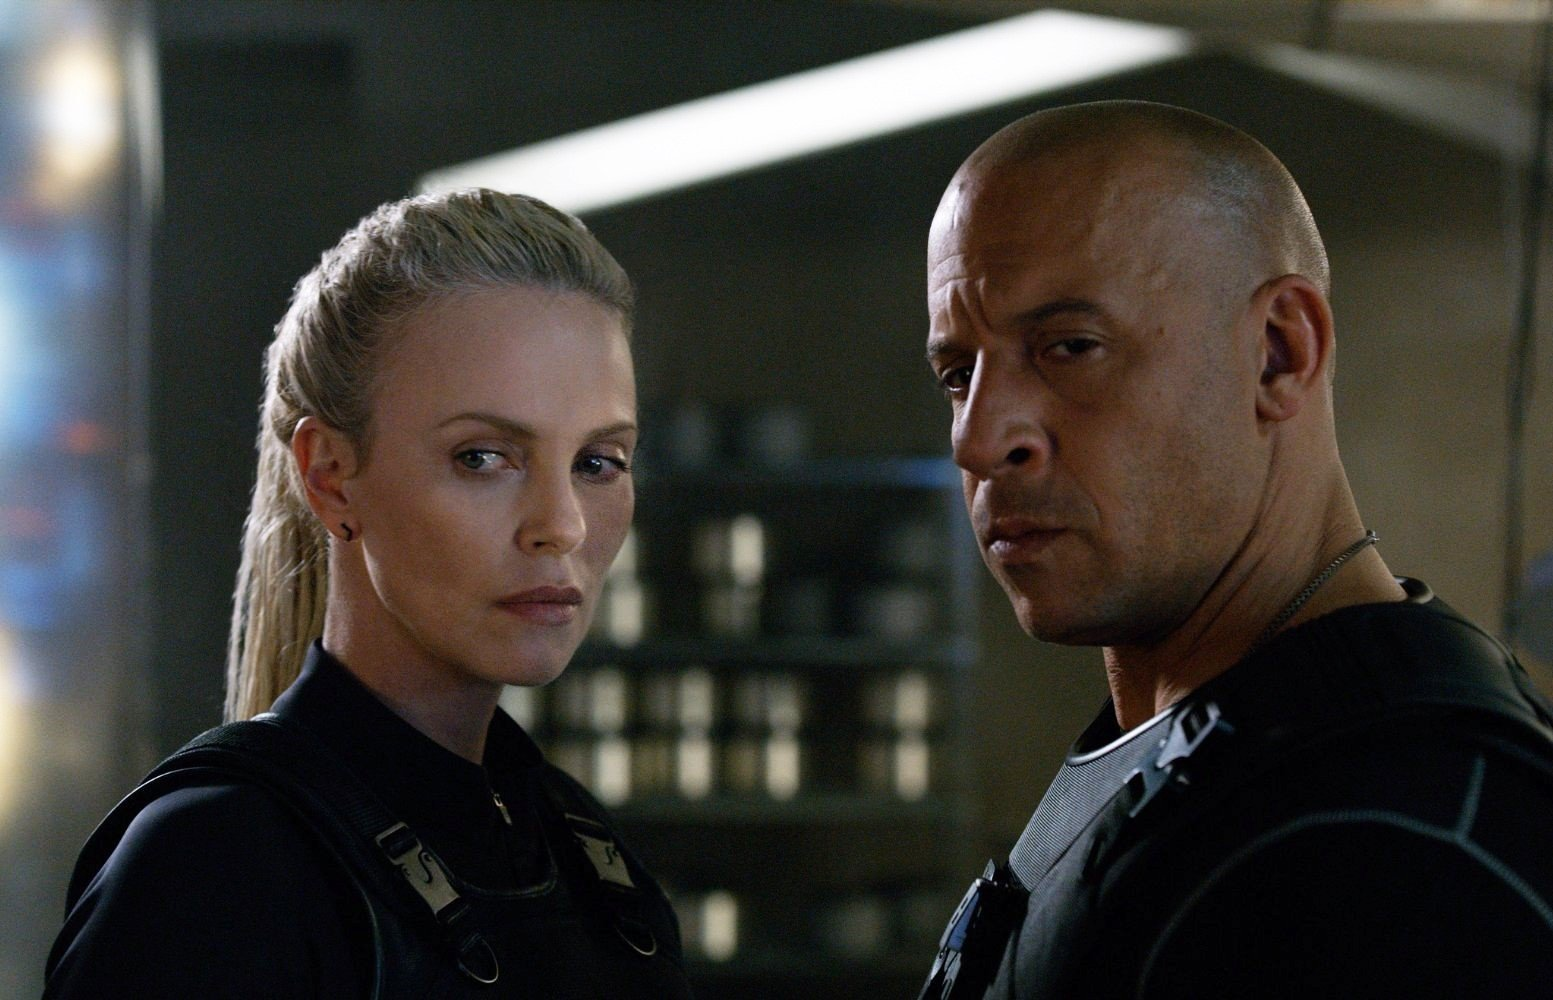 Charlize Theron stars as Cipher and Vin Diesel stars as Dominic Toretto in Universal Pictures' The Fate of the Furious (2017)